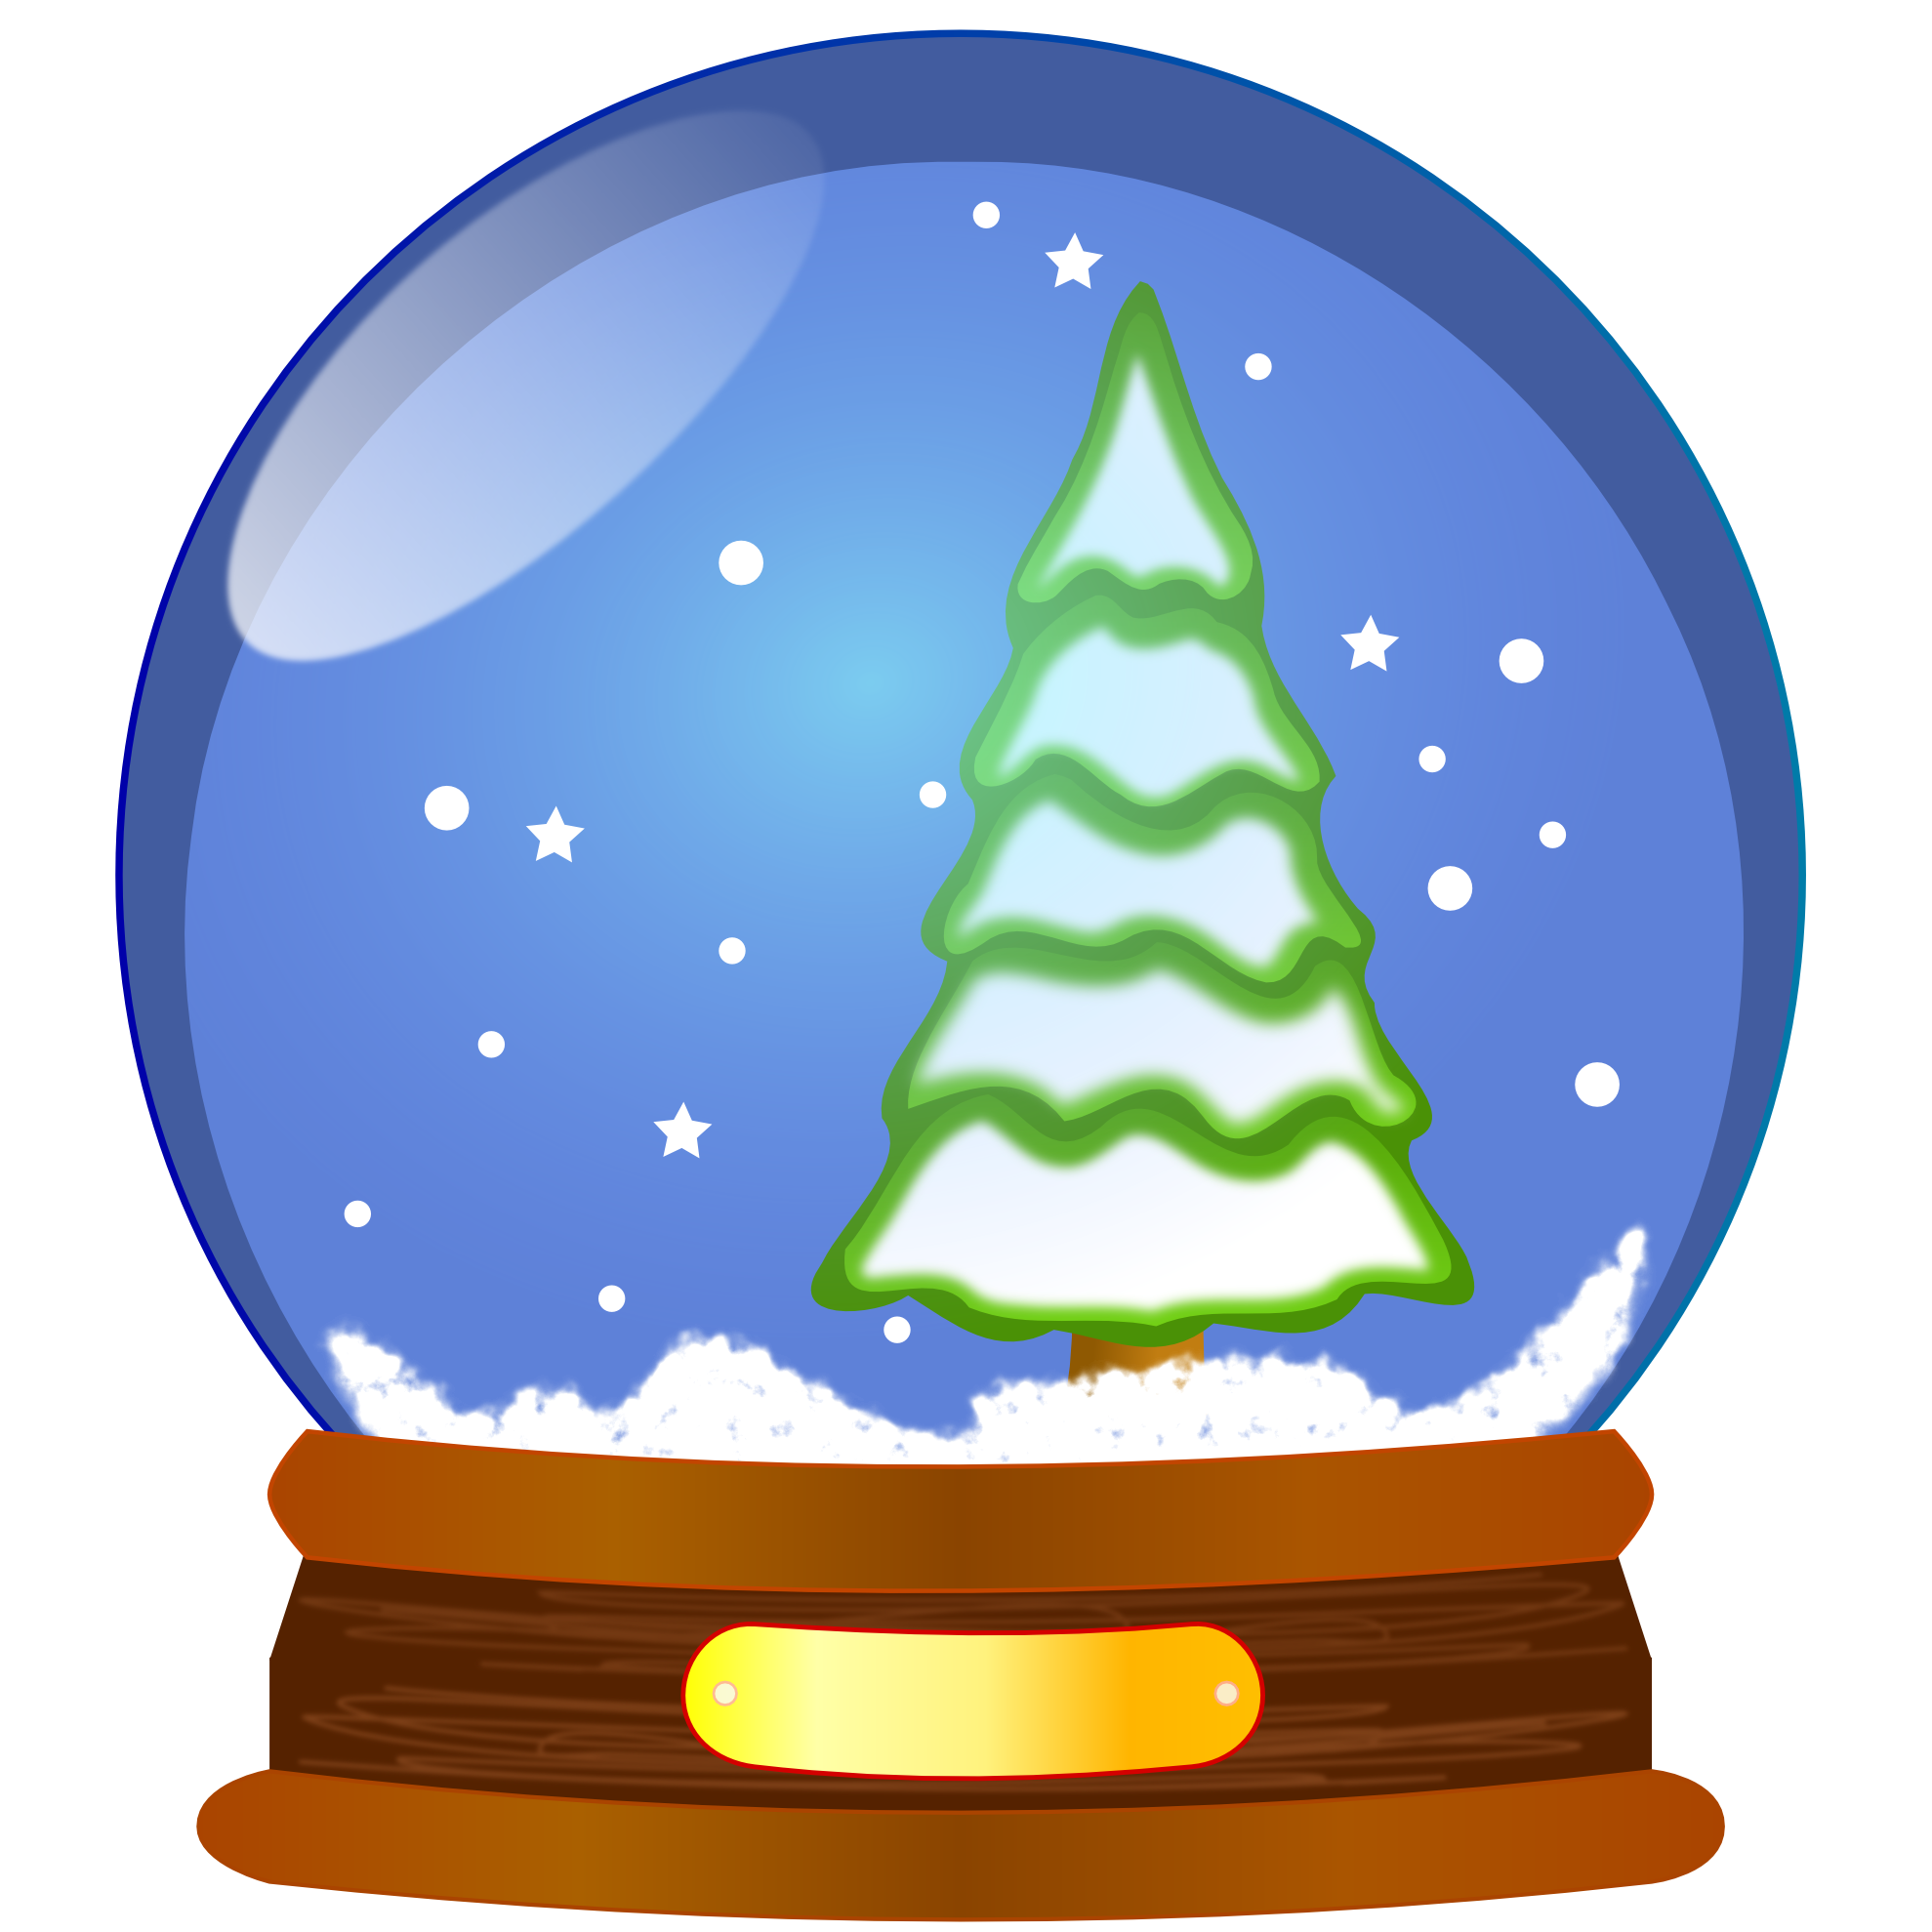 Snowglobe drawing realistic. Winter snow globe clipart